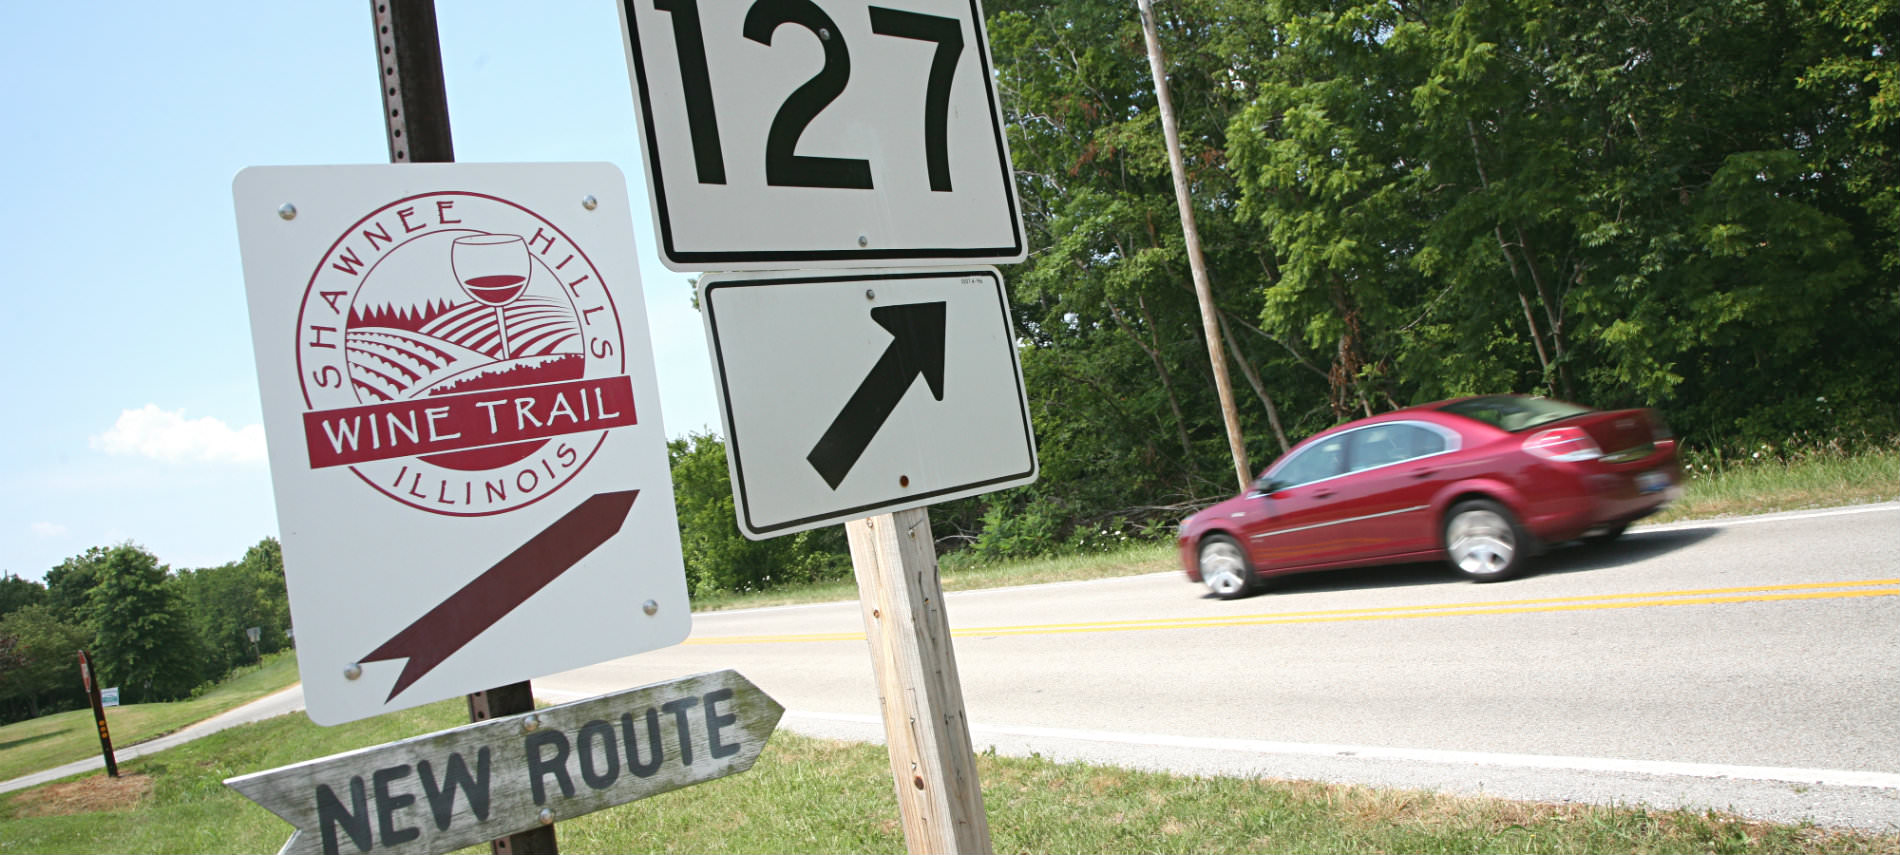 Red car on 2 lane road, road sign route 127 and Shawnee Hills Wine Trail (New Route) red and white sign.